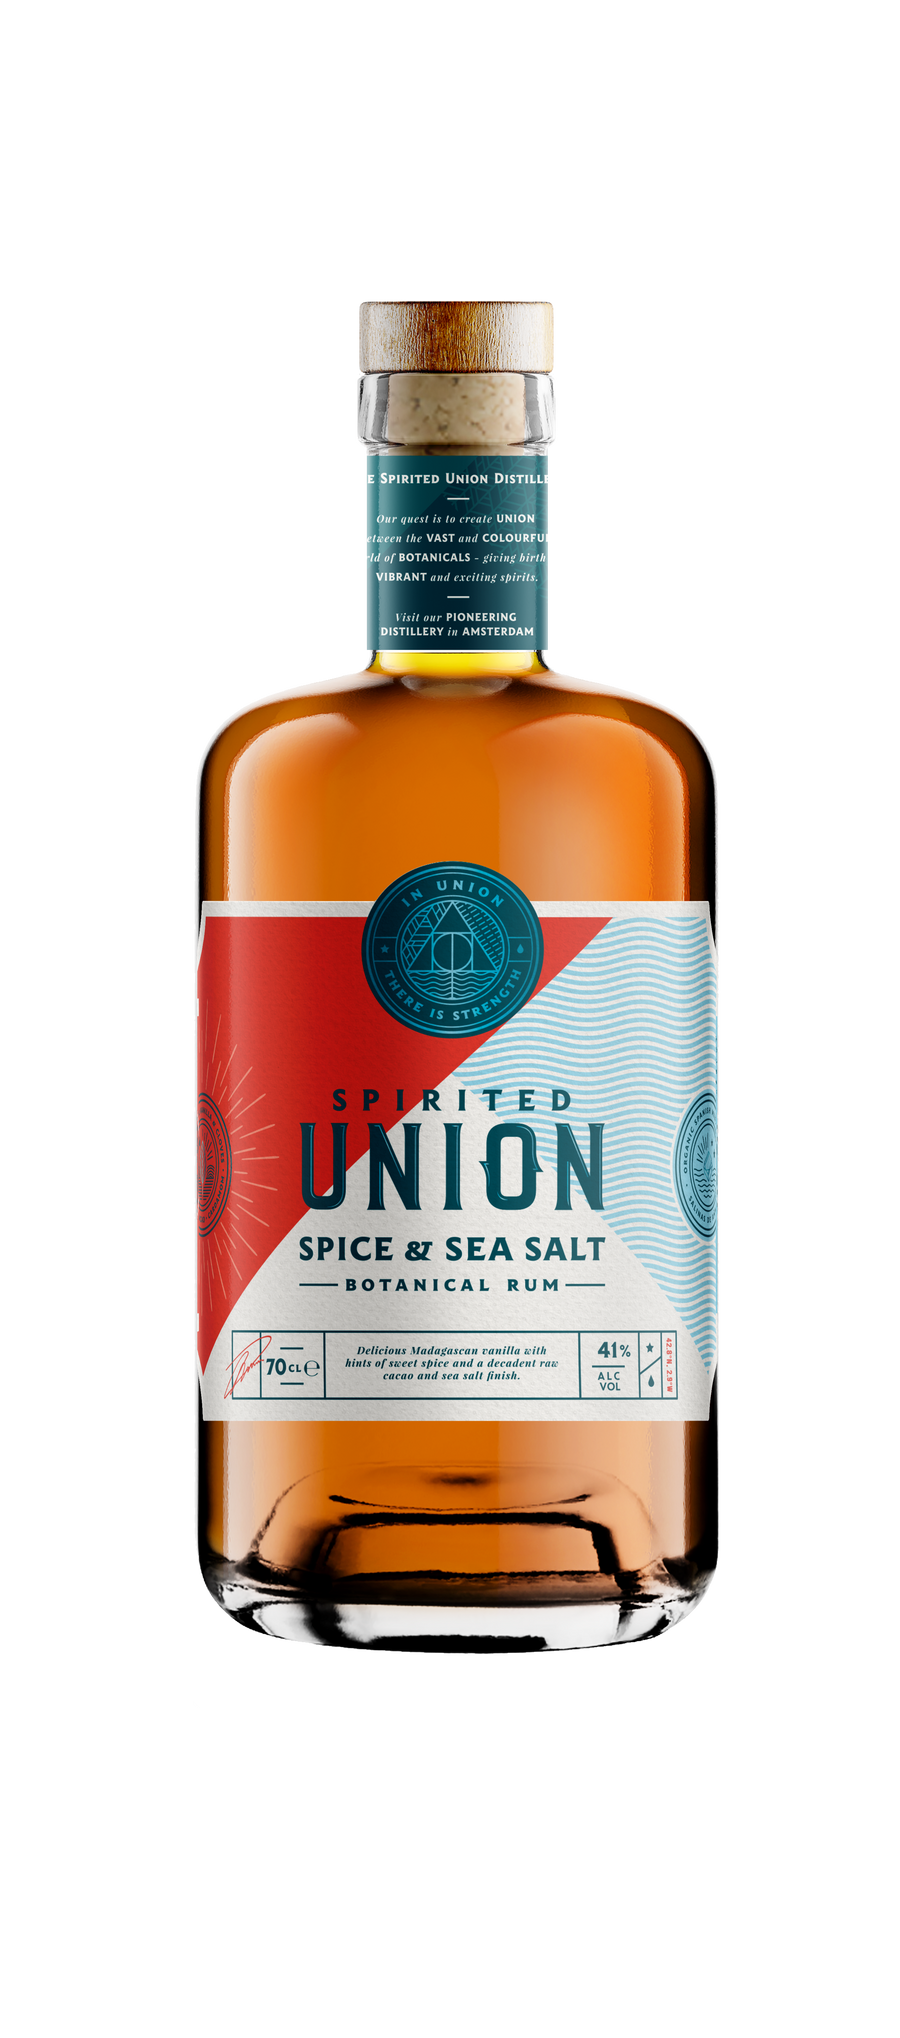 Spirited Union SPICE & SEA SALT RUM - Collection Spirits